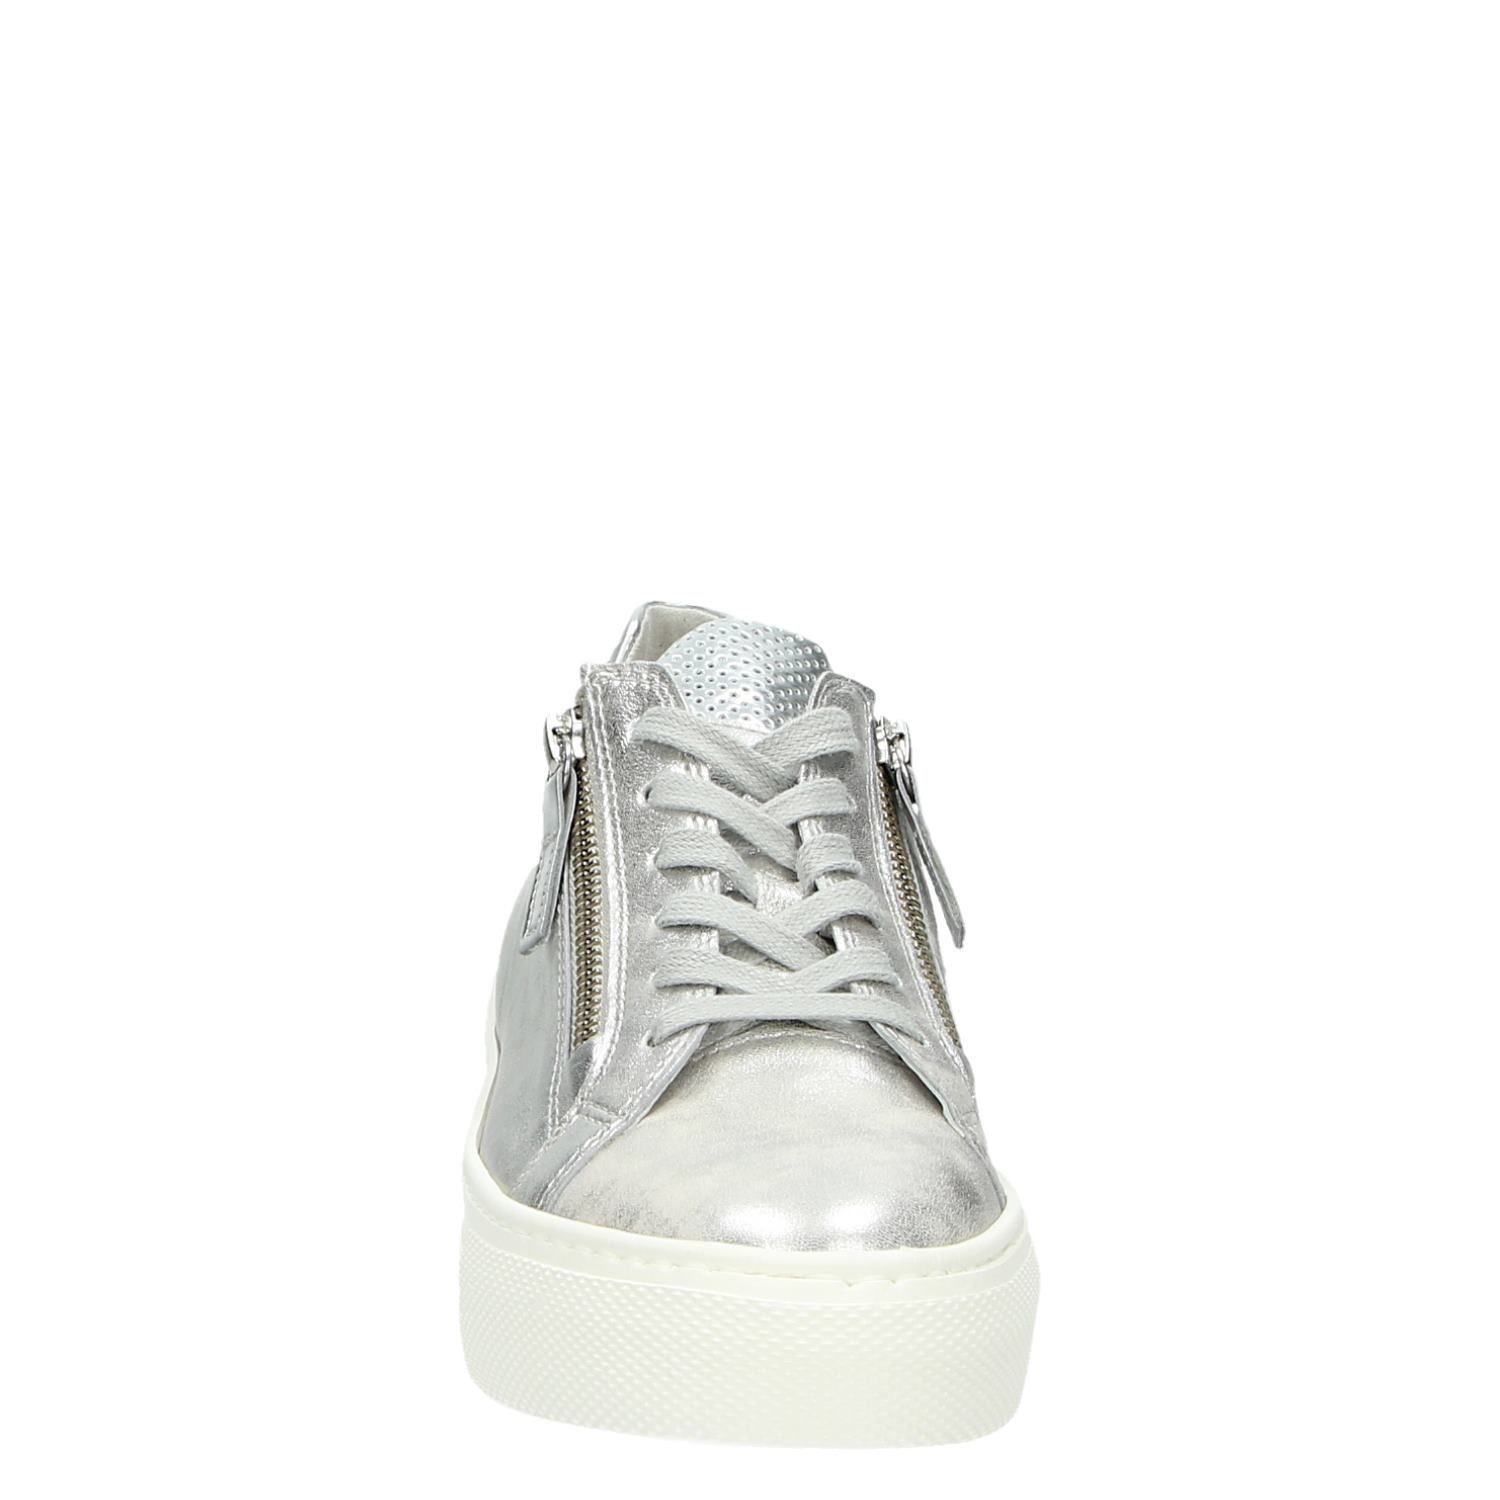 b6ae058496a Gabor dames lage sneakers zilver